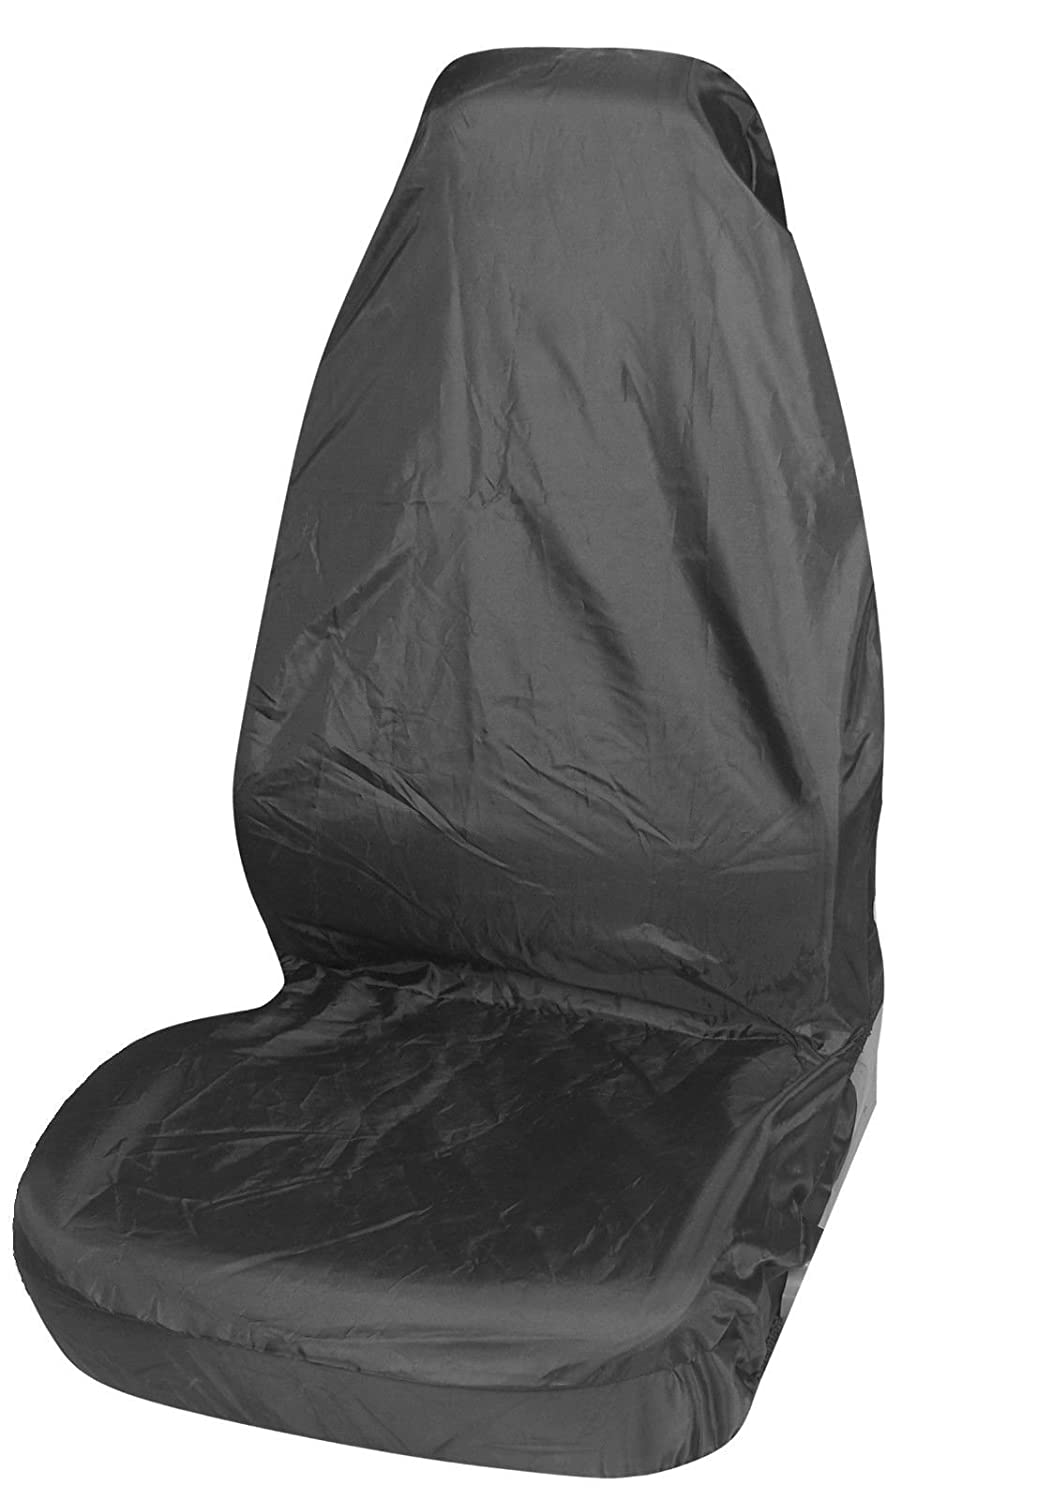 MR E SAVER© Heavy Duty Waterproof Single Seat Cover Protector Seat Protection Seat Covers & Supports Black MRE1196